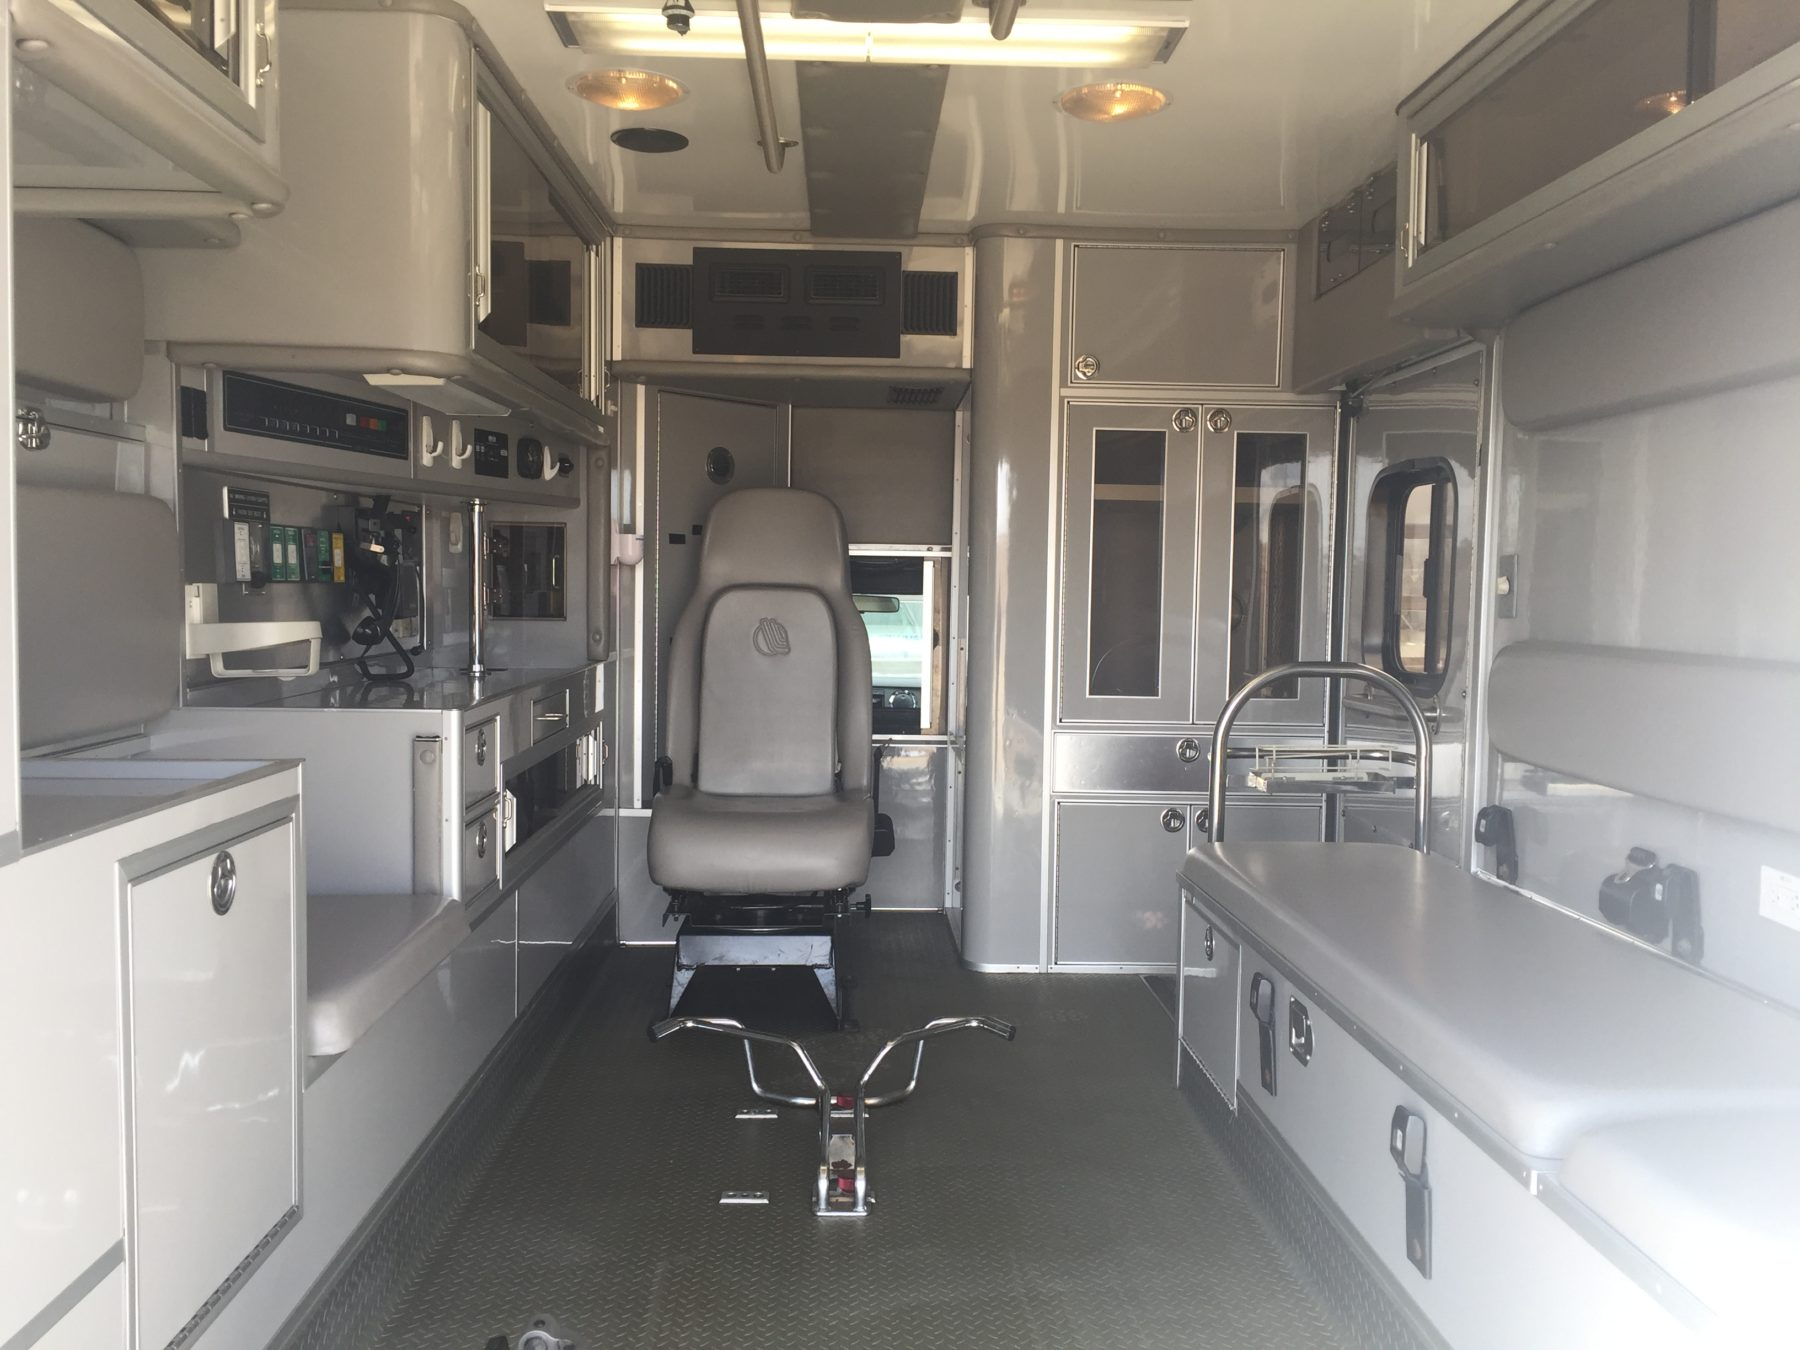 2008 Ford F450 Heavy Duty Ambulance For Sale – Picture 2